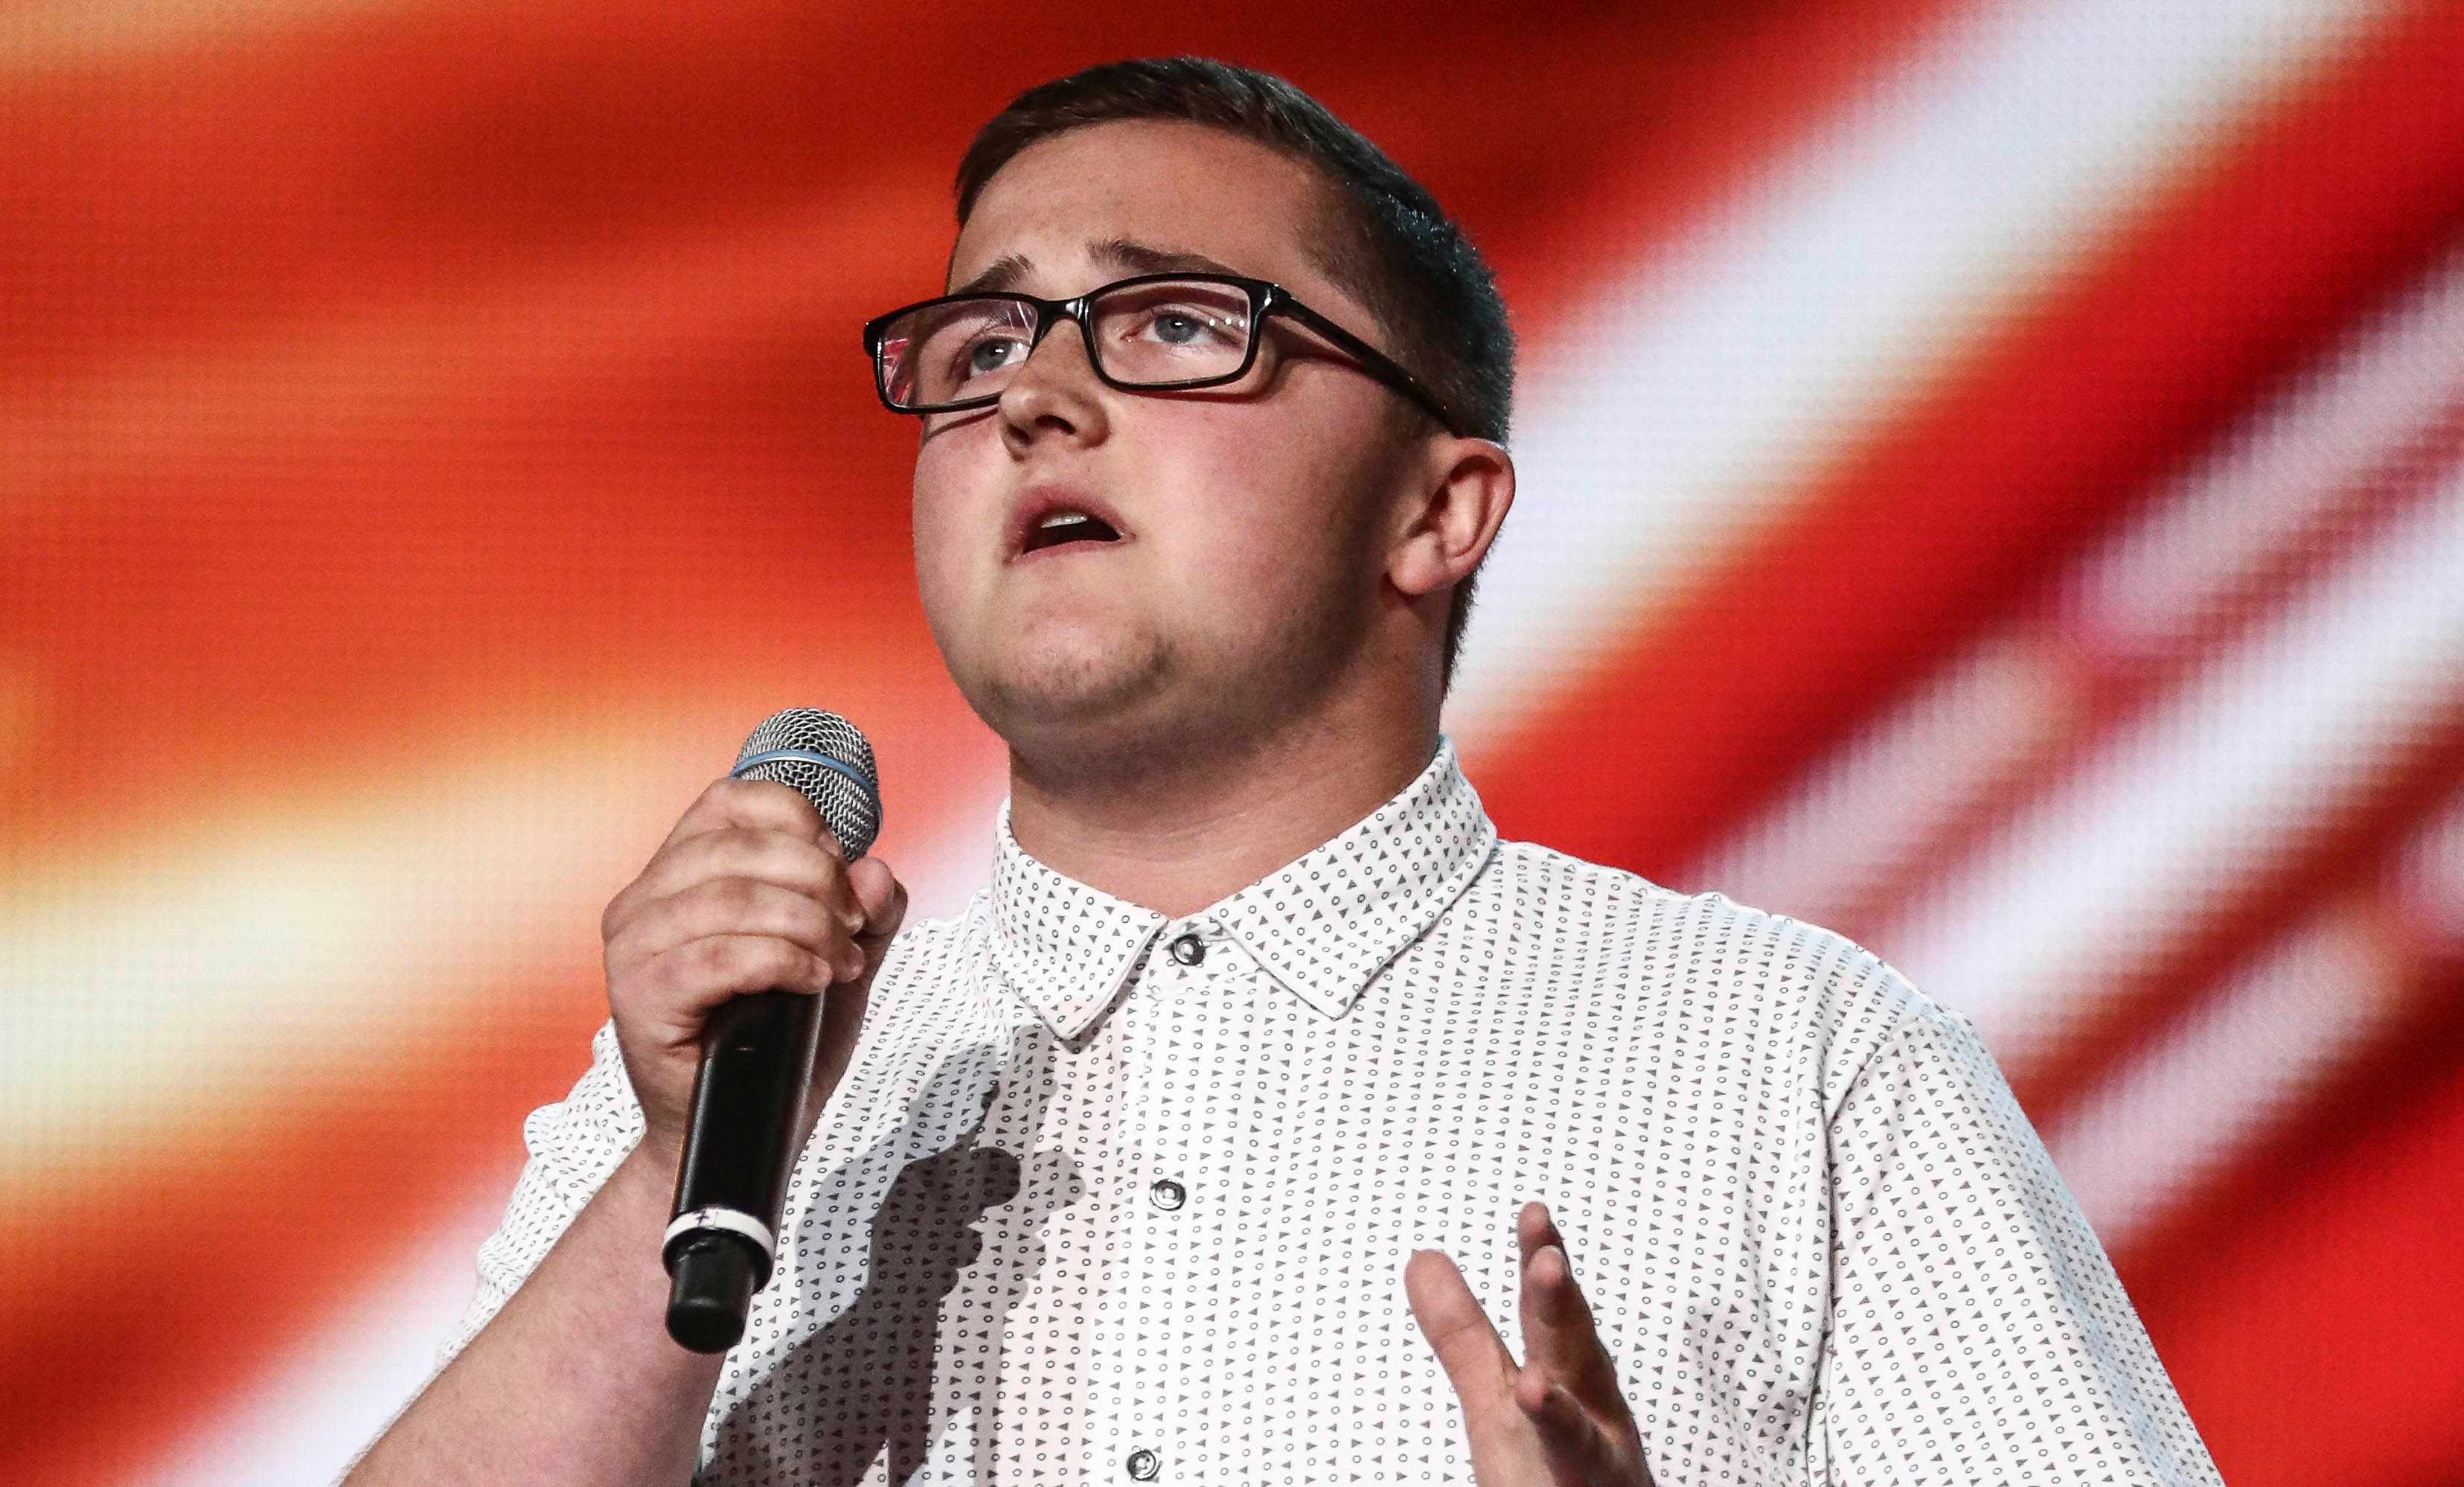 Daniel Quick on The X Factor